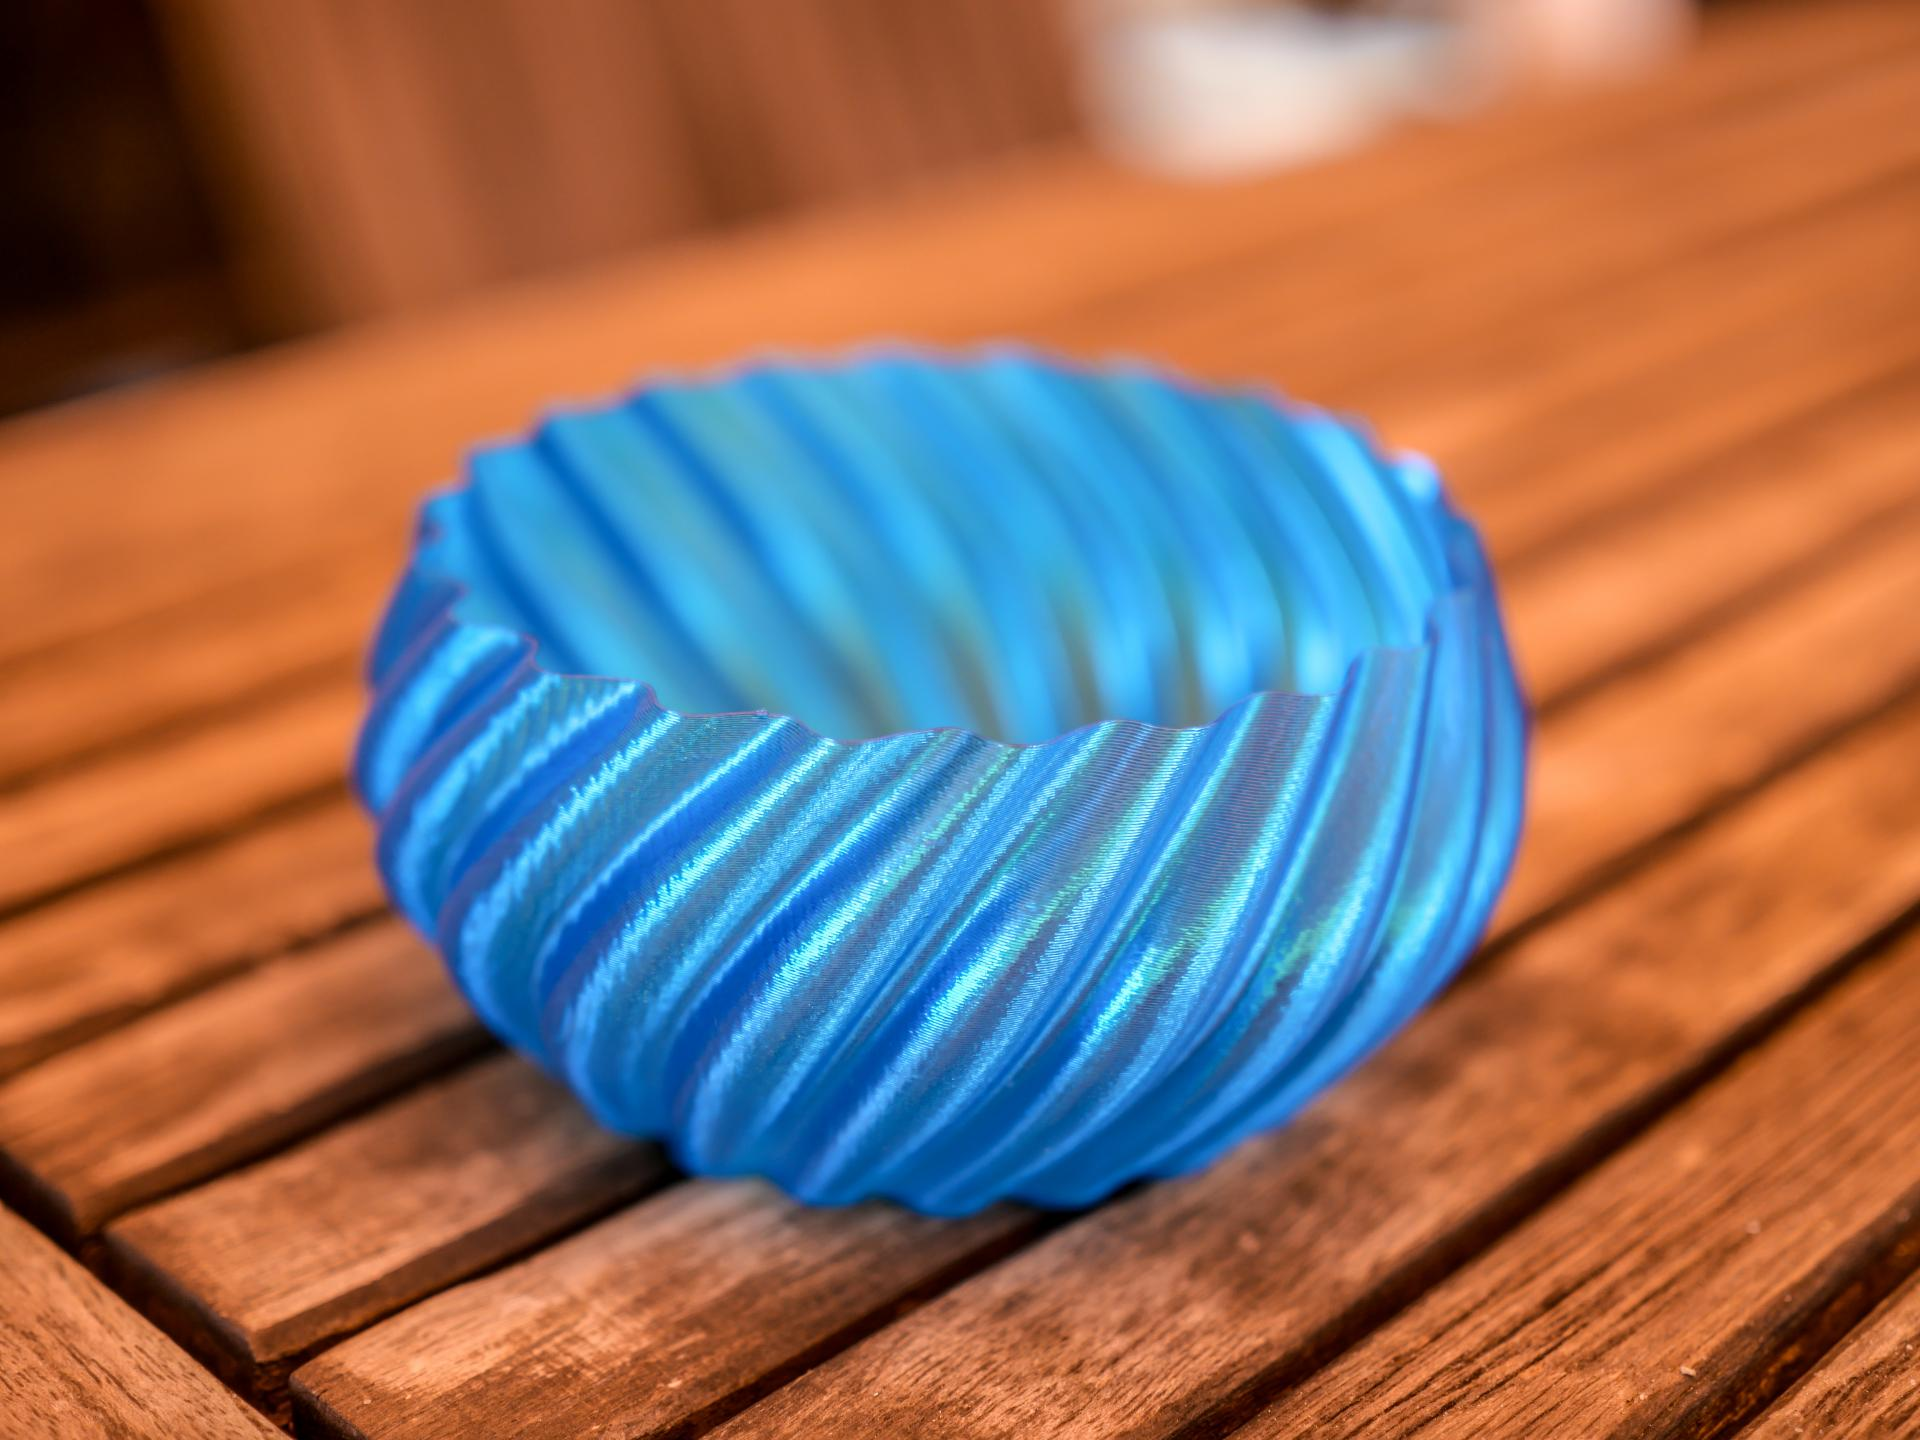 Candy Bowl by Creative Tools